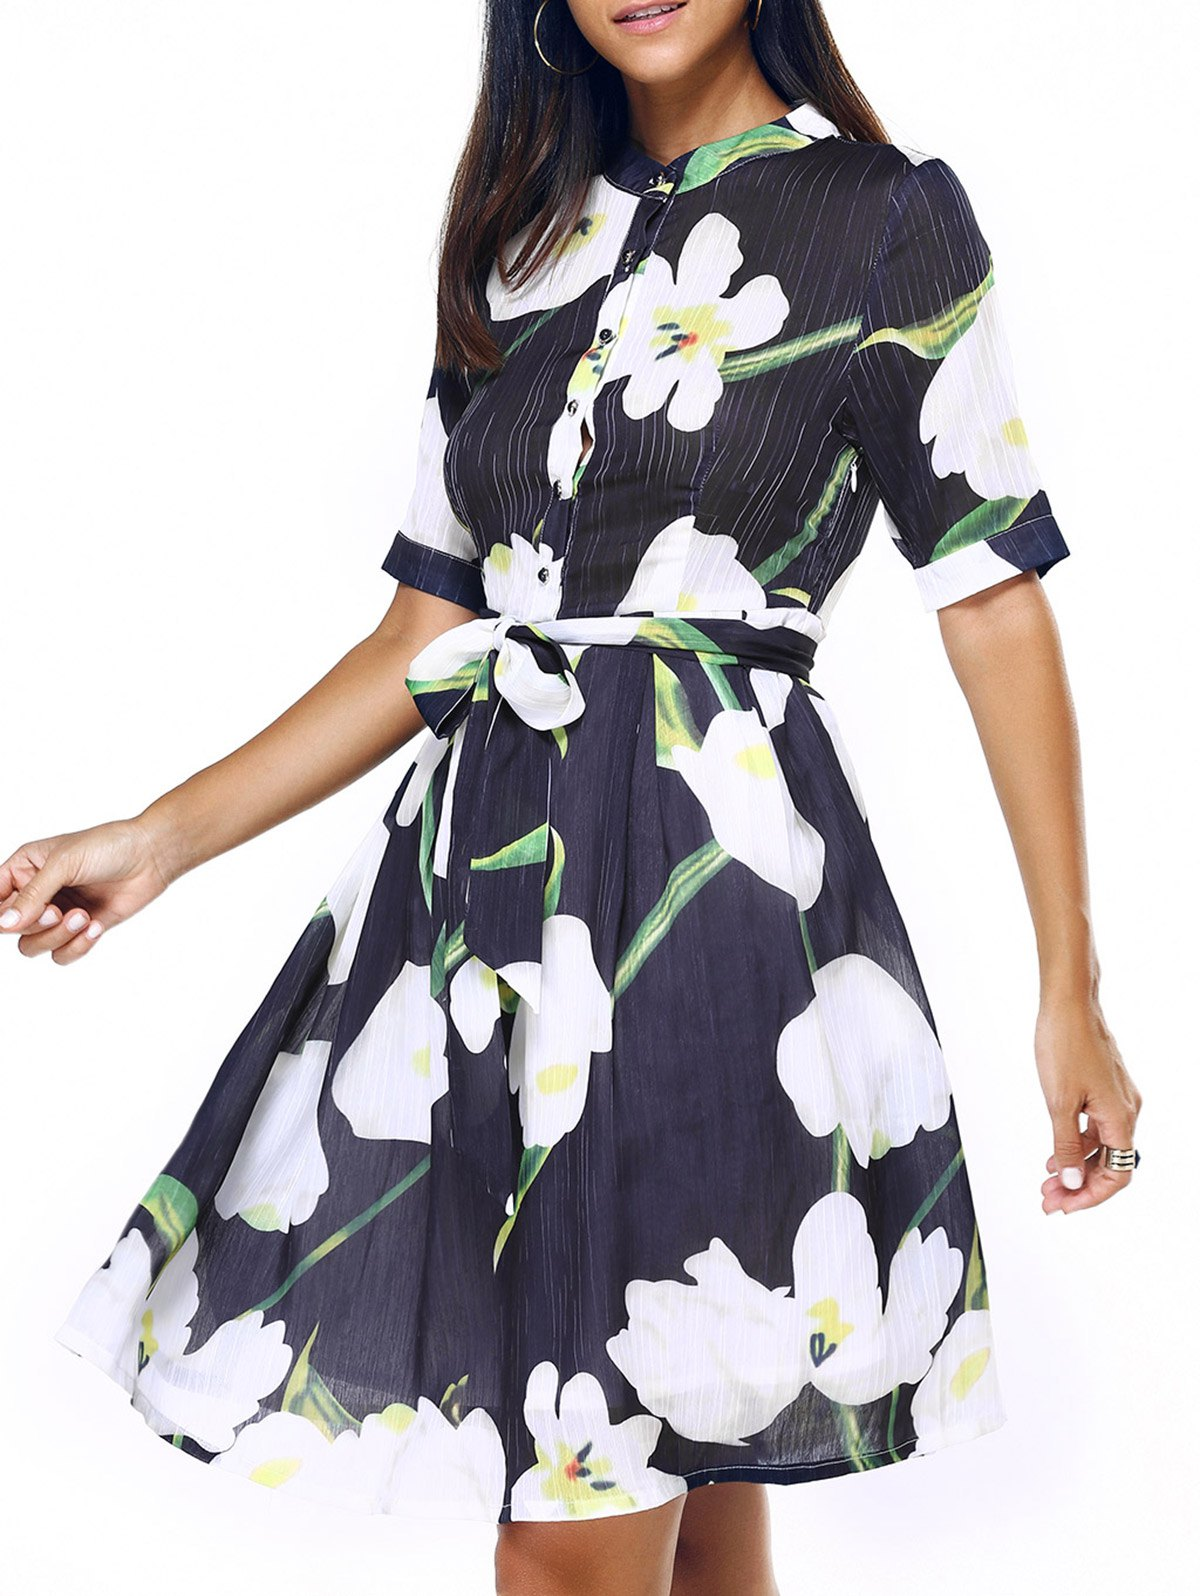 Graceful Women's Stand-Up Collar Floral Print Chiffon Dress - BLACK XL